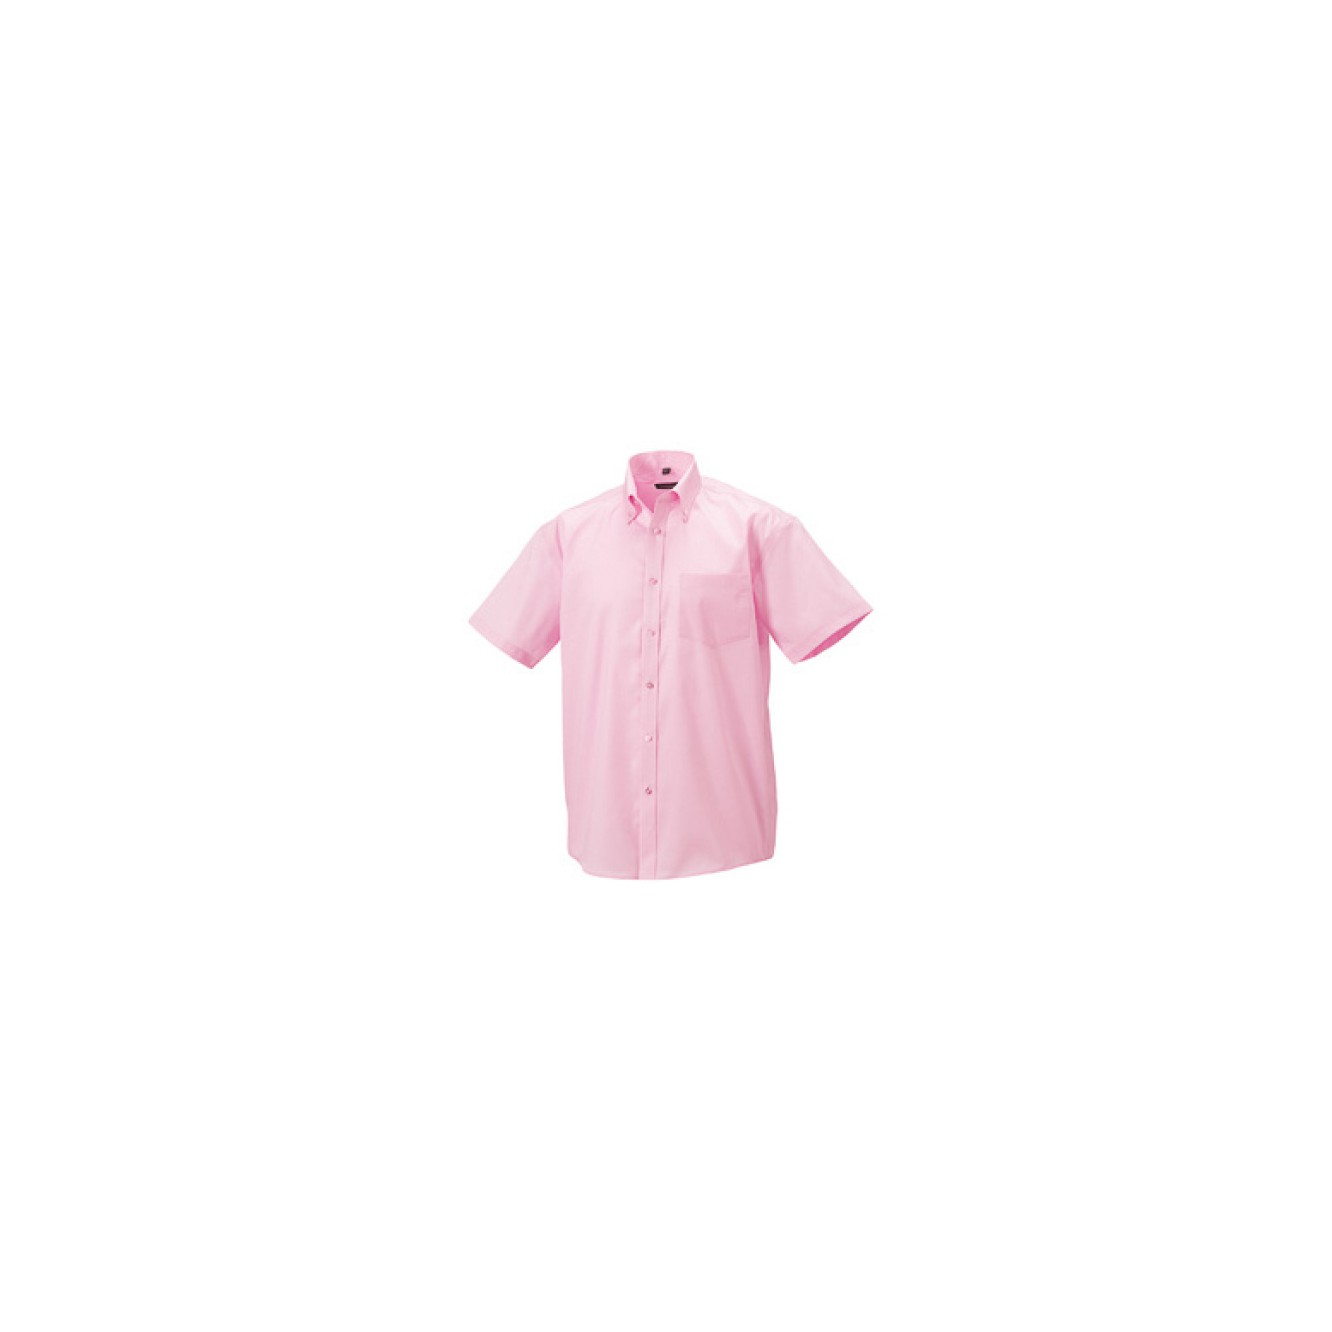 Men's ss ultimate non-iron shirt